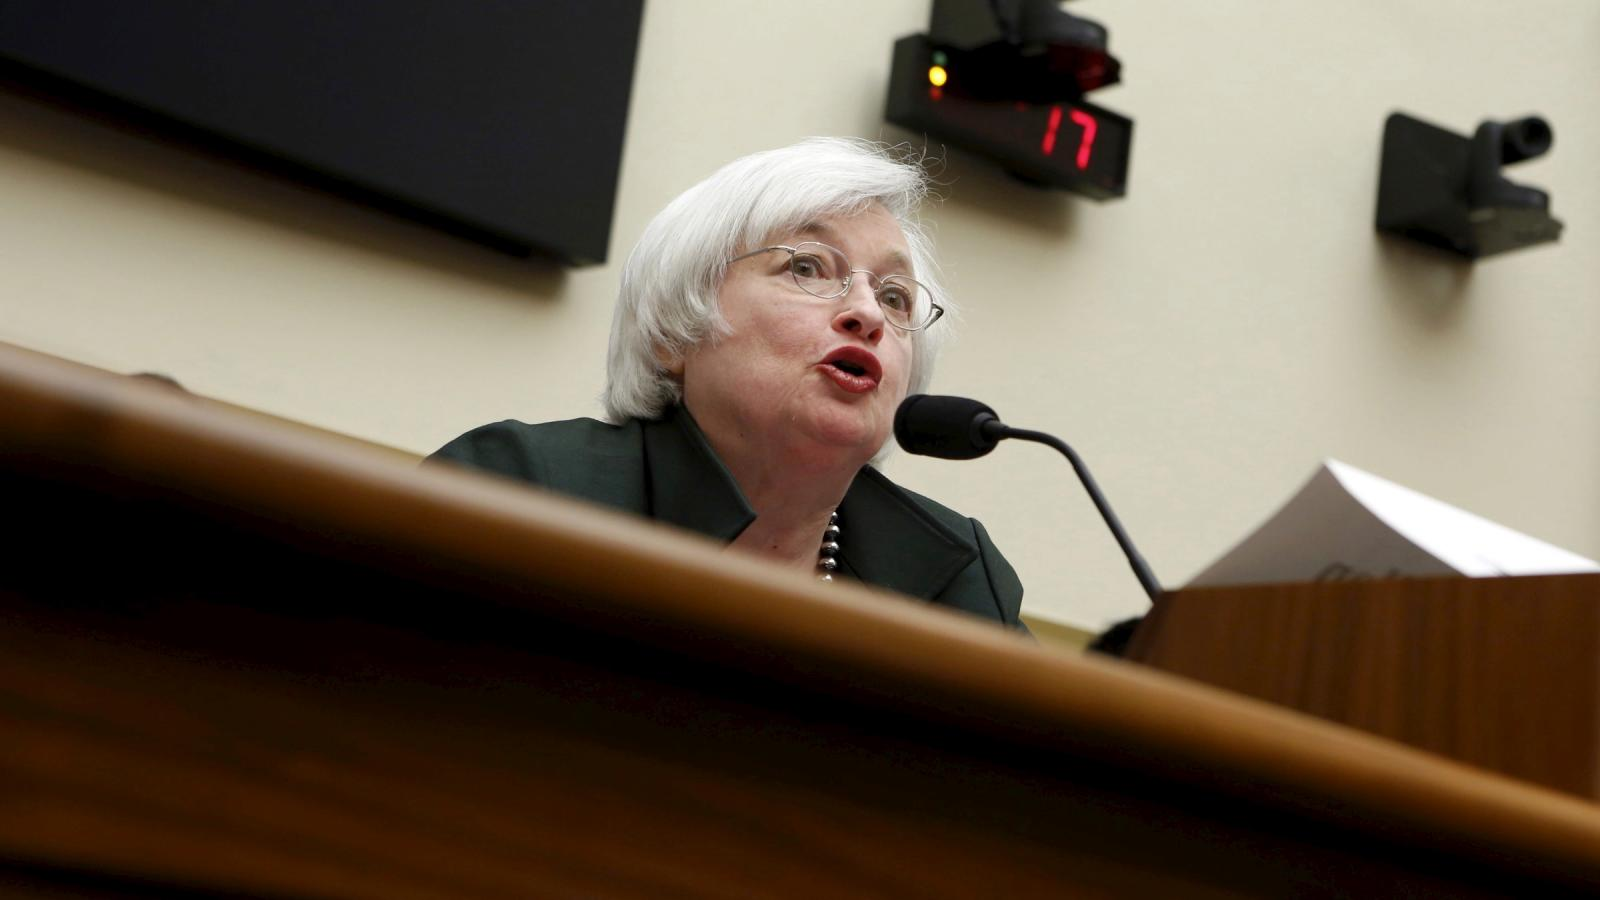 Emerging markets are on tenterhooks over the US Fed's interest-rate